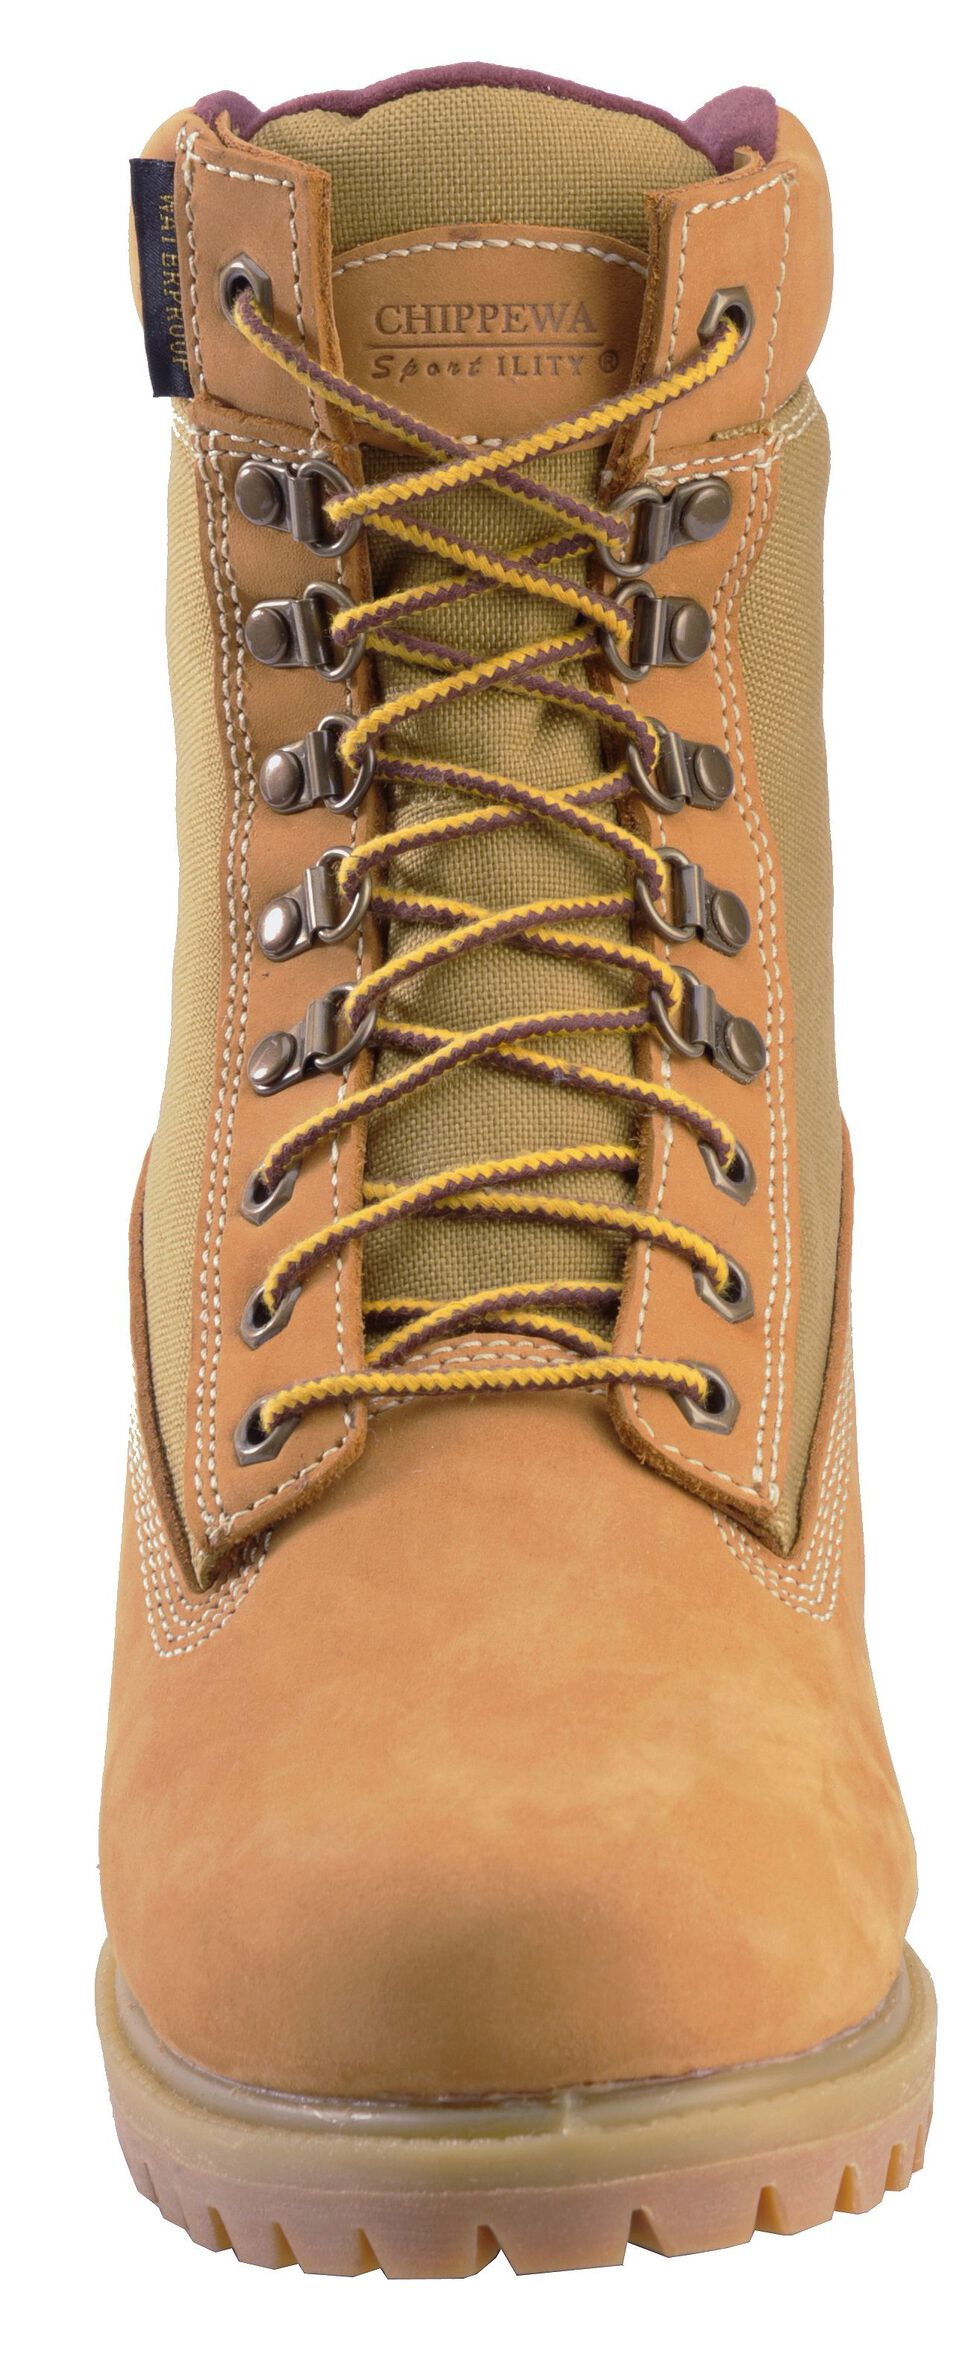 """Chippewa Nubuc Waterproof & Insulated 8"""" Lace-Up Work Boots - Round Toe, Golden Tan, hi-res"""